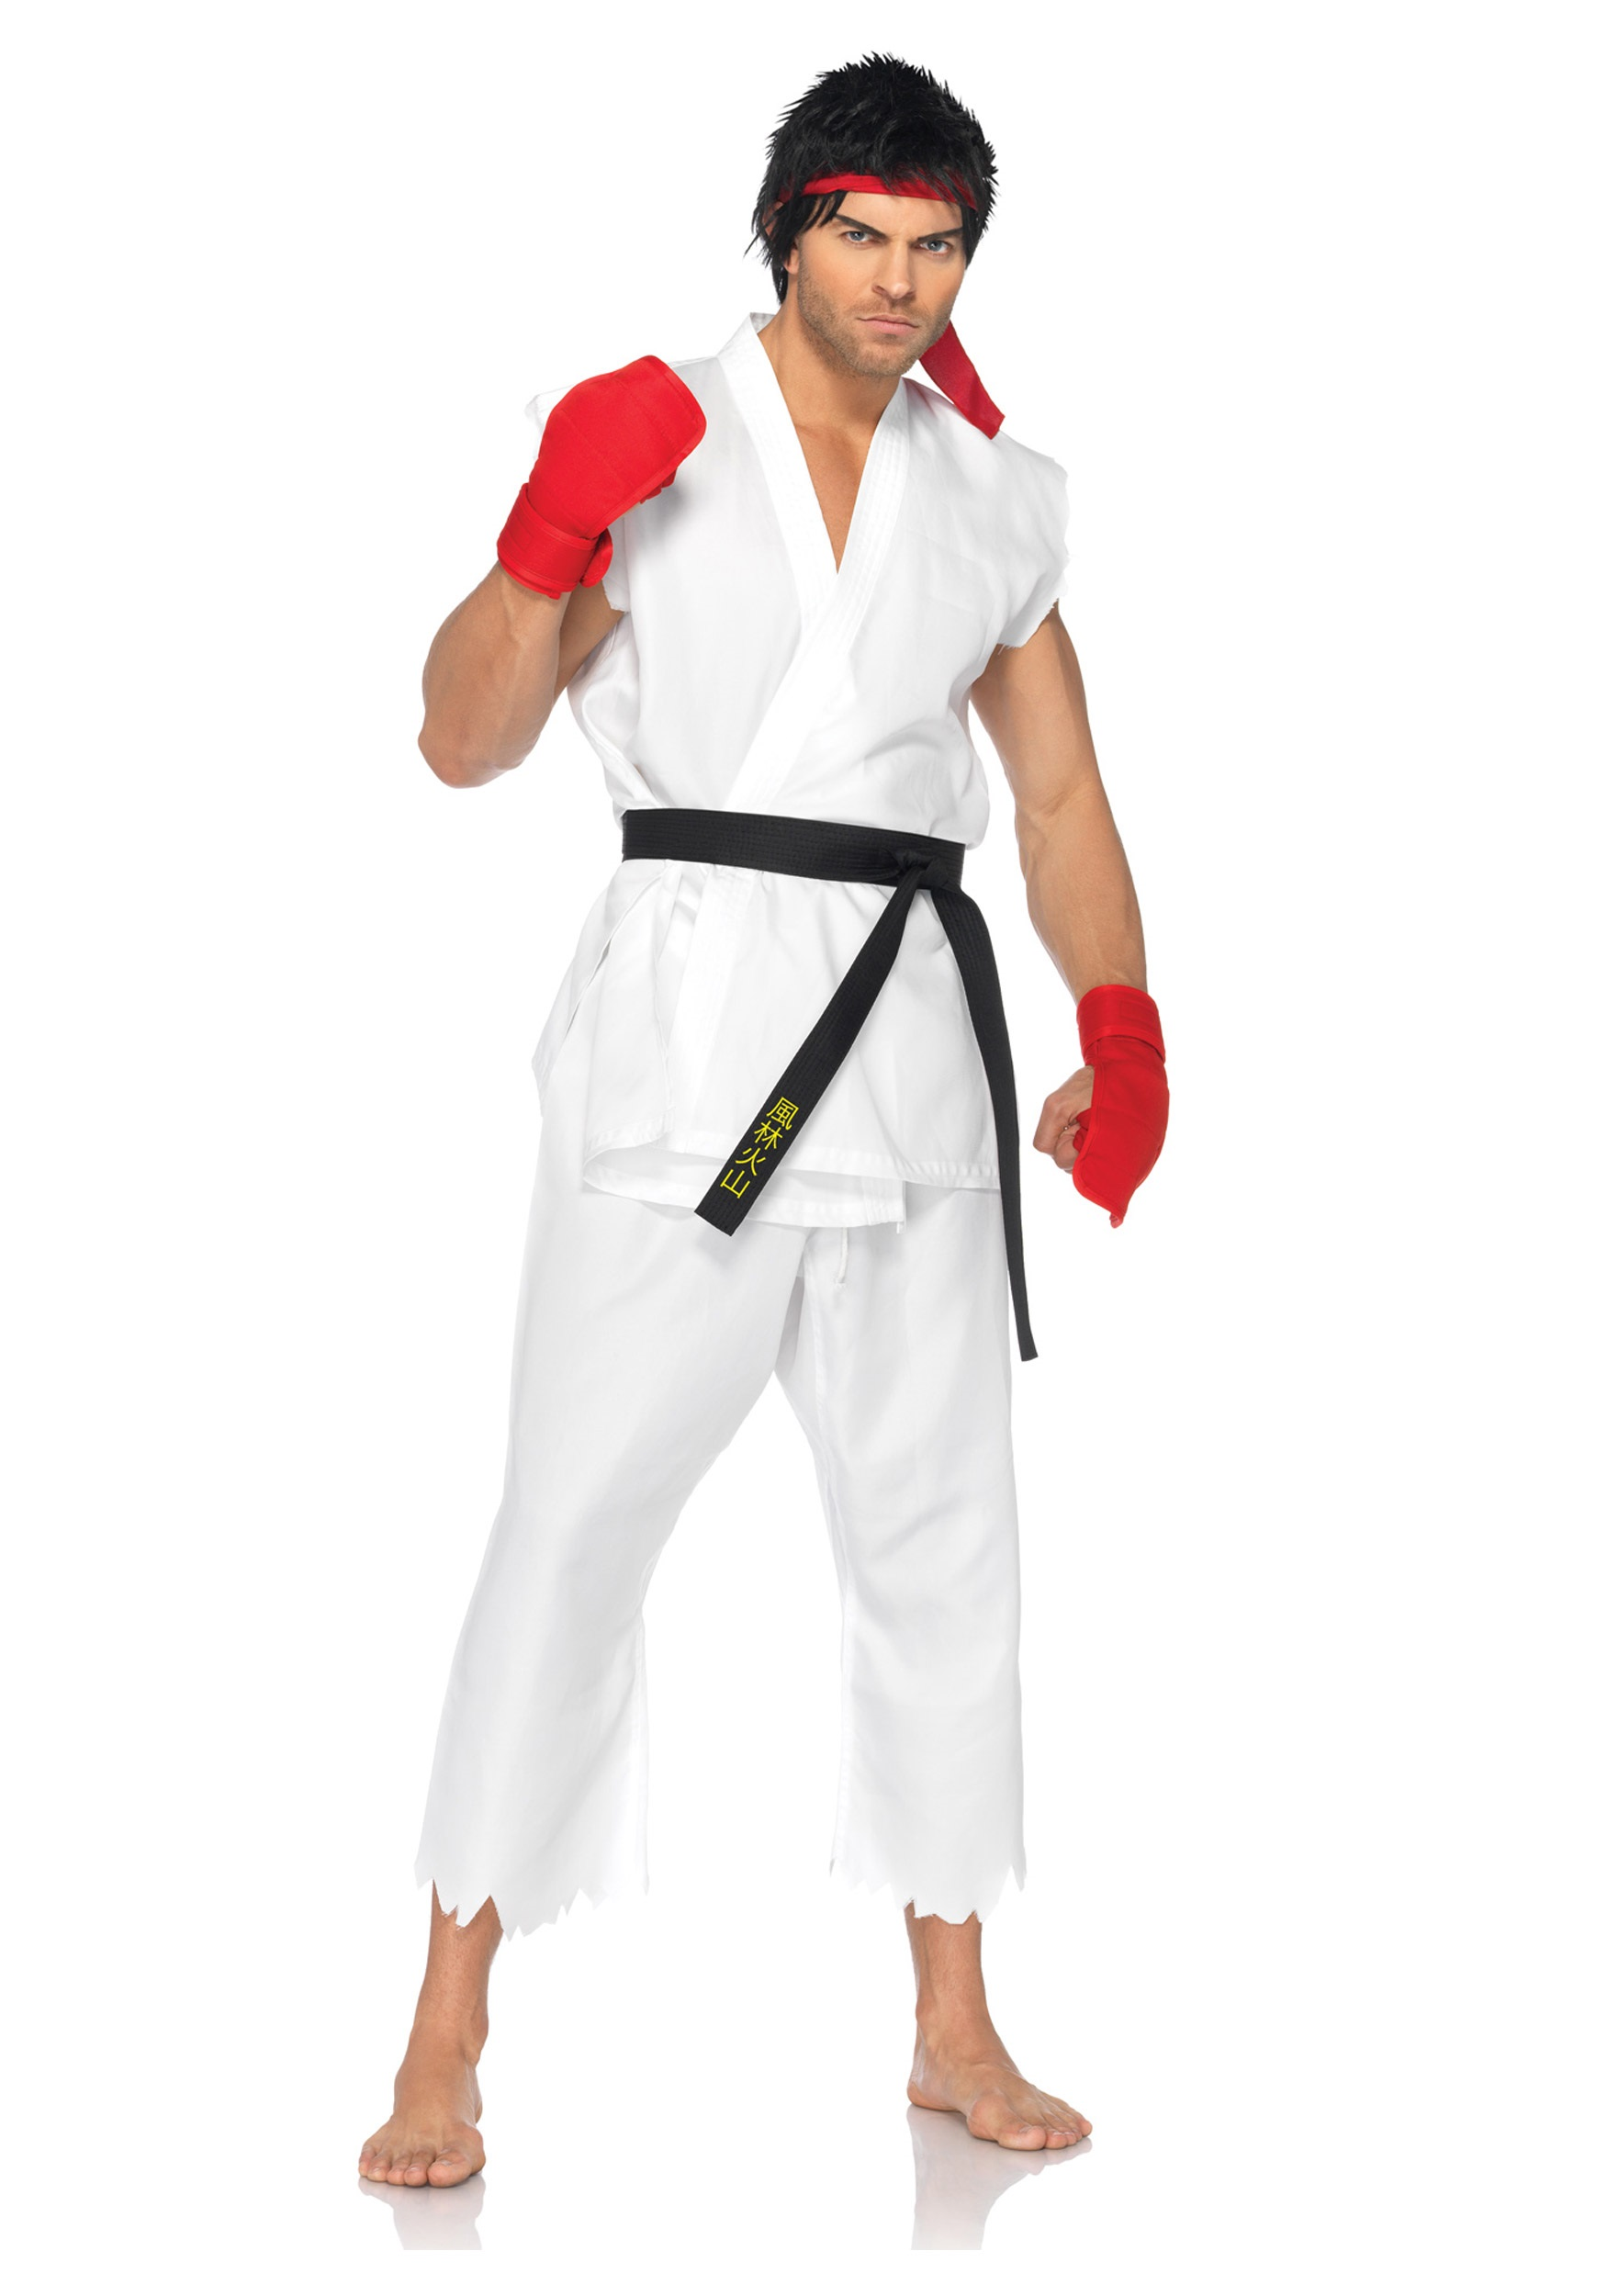 Street Fighter Halloween Costumes 1000 images about gaming inspired halloween costumes on pinterest video game costumes halloween costumes and chun li costume Ryu Costume